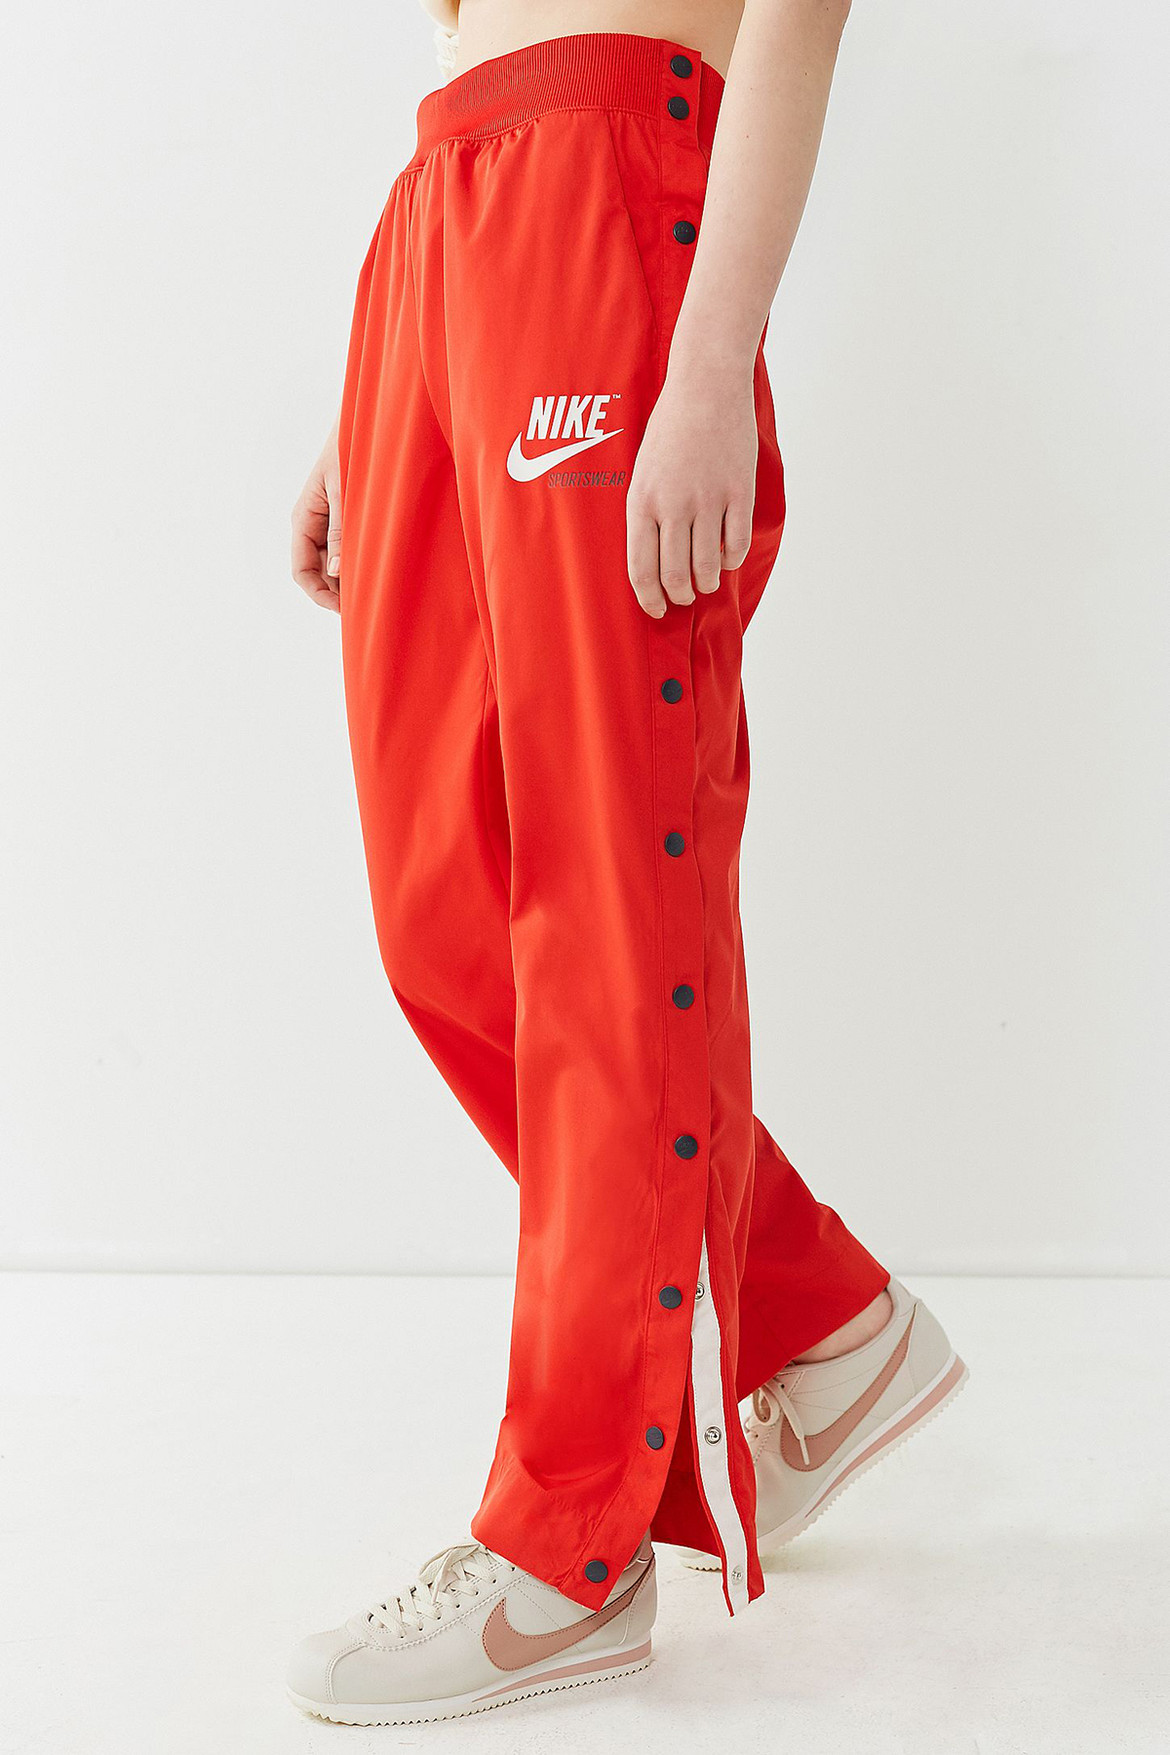 Camello Guinness Apellido  Nike Drops Vintage Tear-Away Track Pants in Red | HYPEBAE